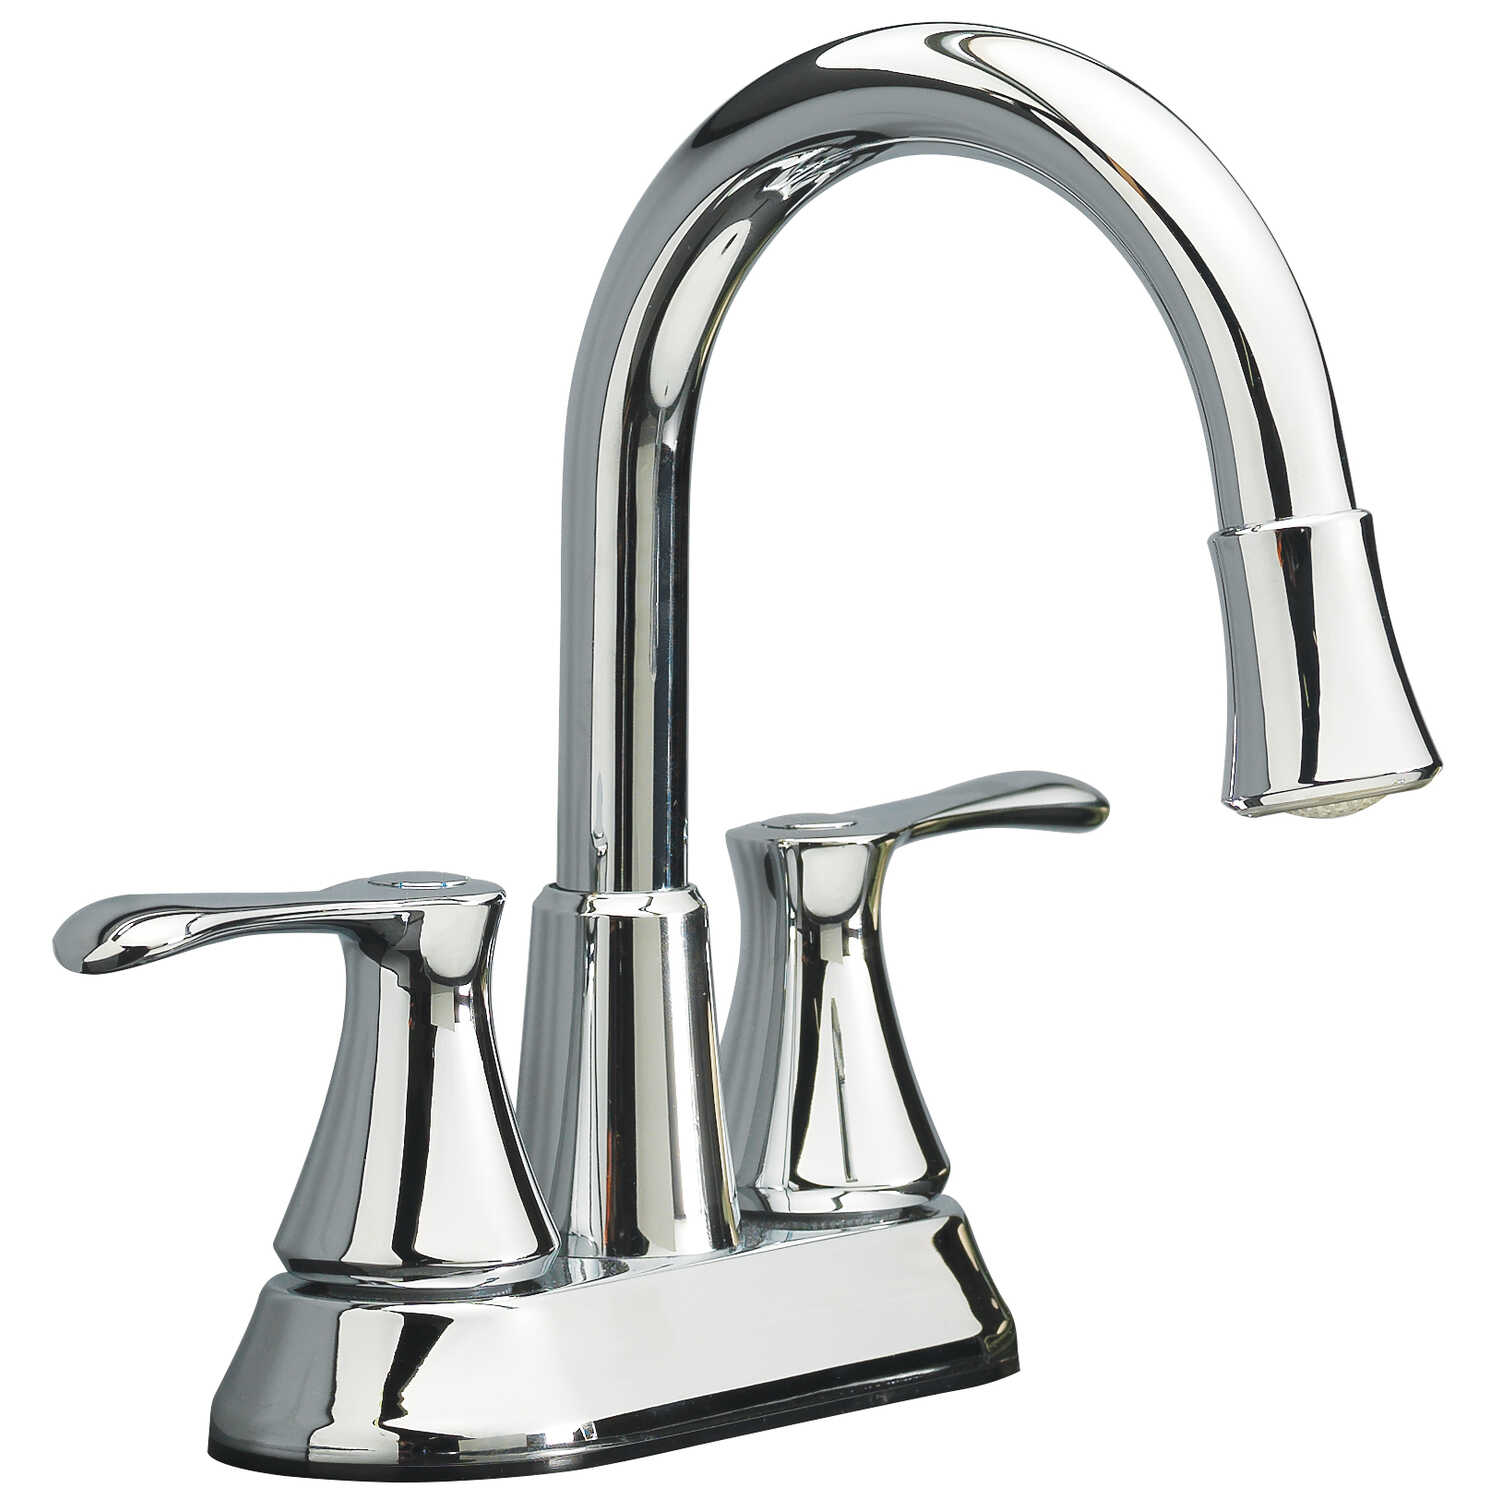 OakBrook  Doria  Doria  Two Handle LED  High Arc  Lavatory Pop-Up Faucet  4 in. Brushed Nickel  1.2